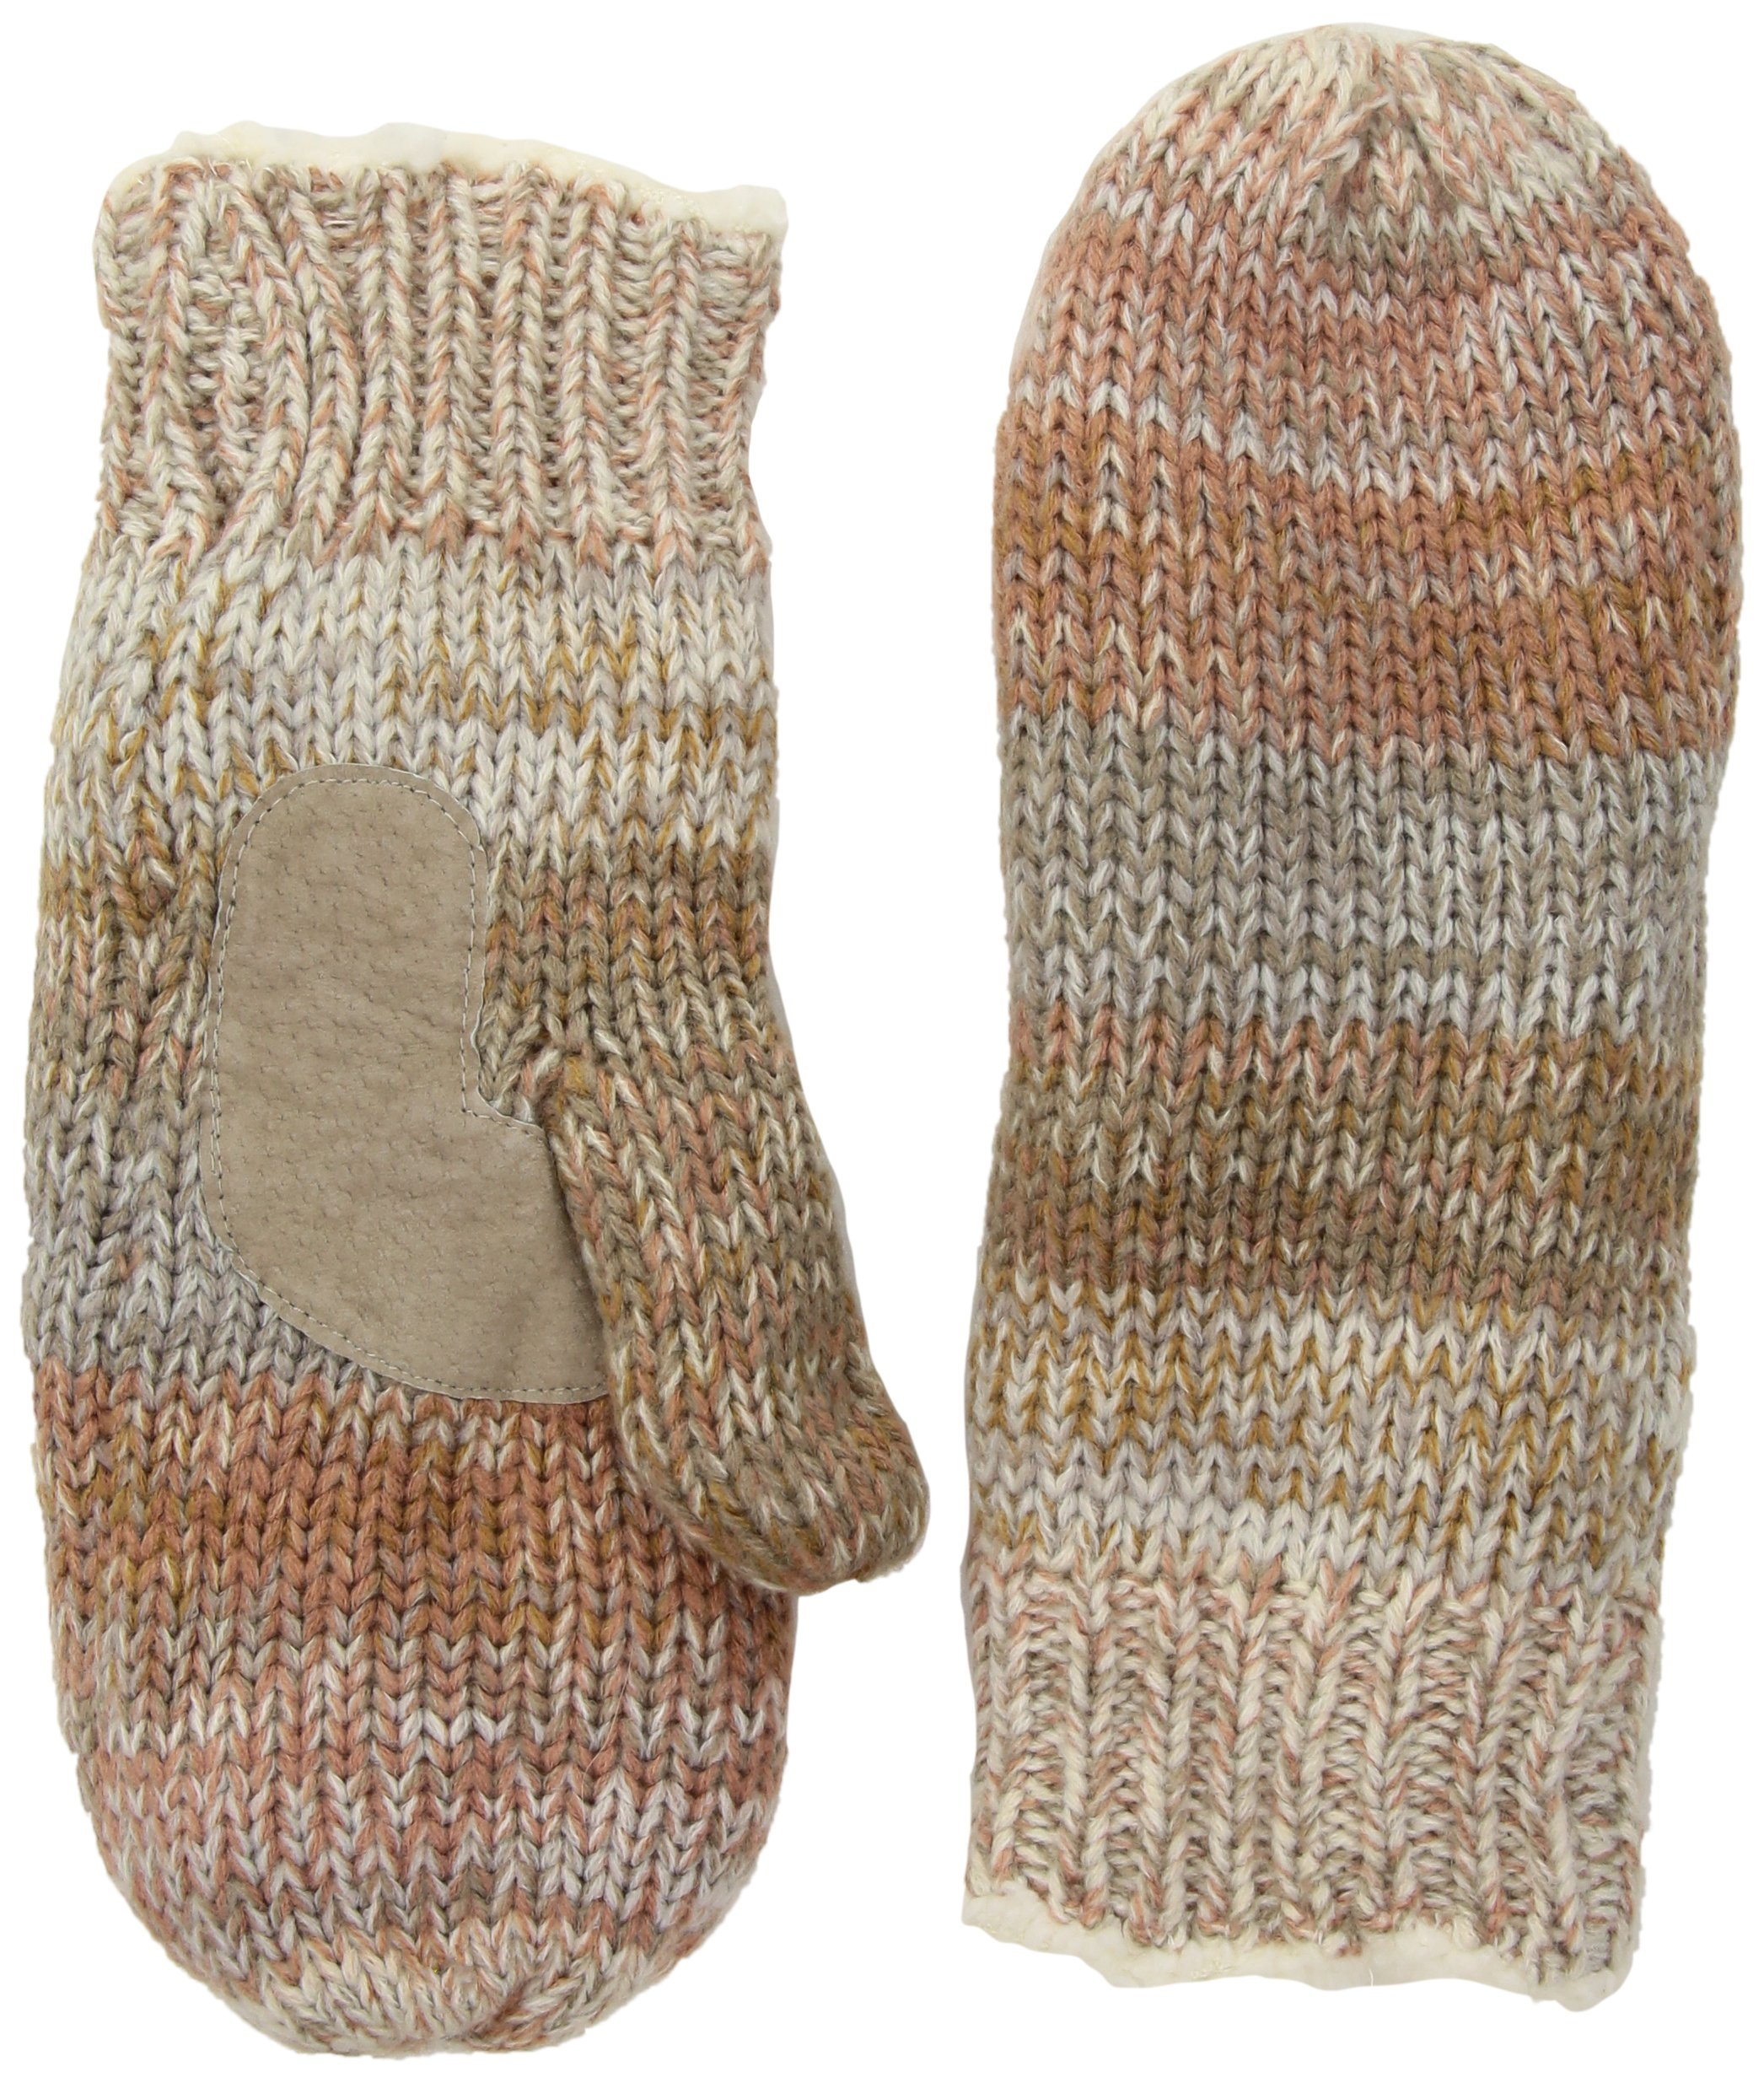 Isotoner Women's Chunky Cable Knit Sherpasoft Mittens, Ivory/Multi, One Size